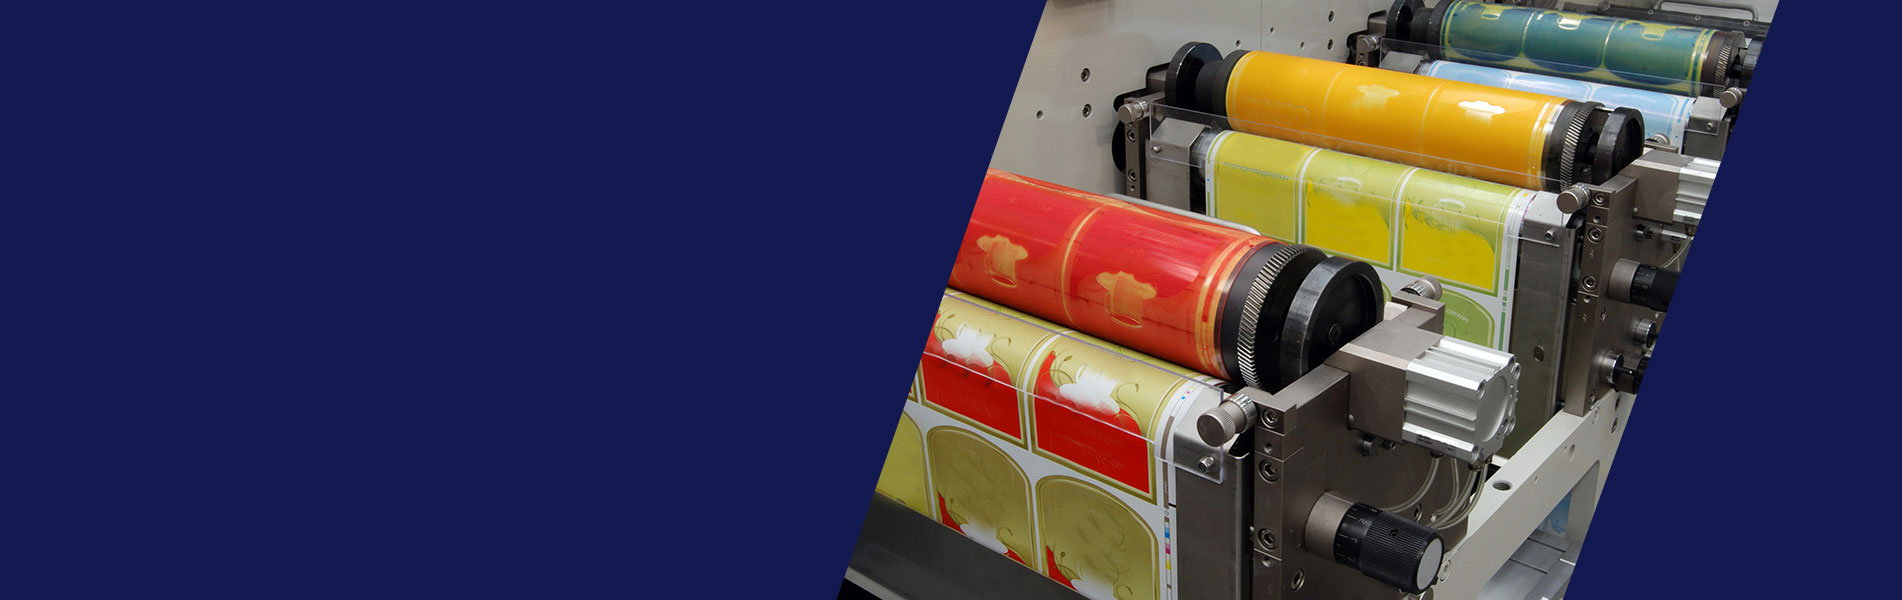 Flexography Printing - Acro Labels